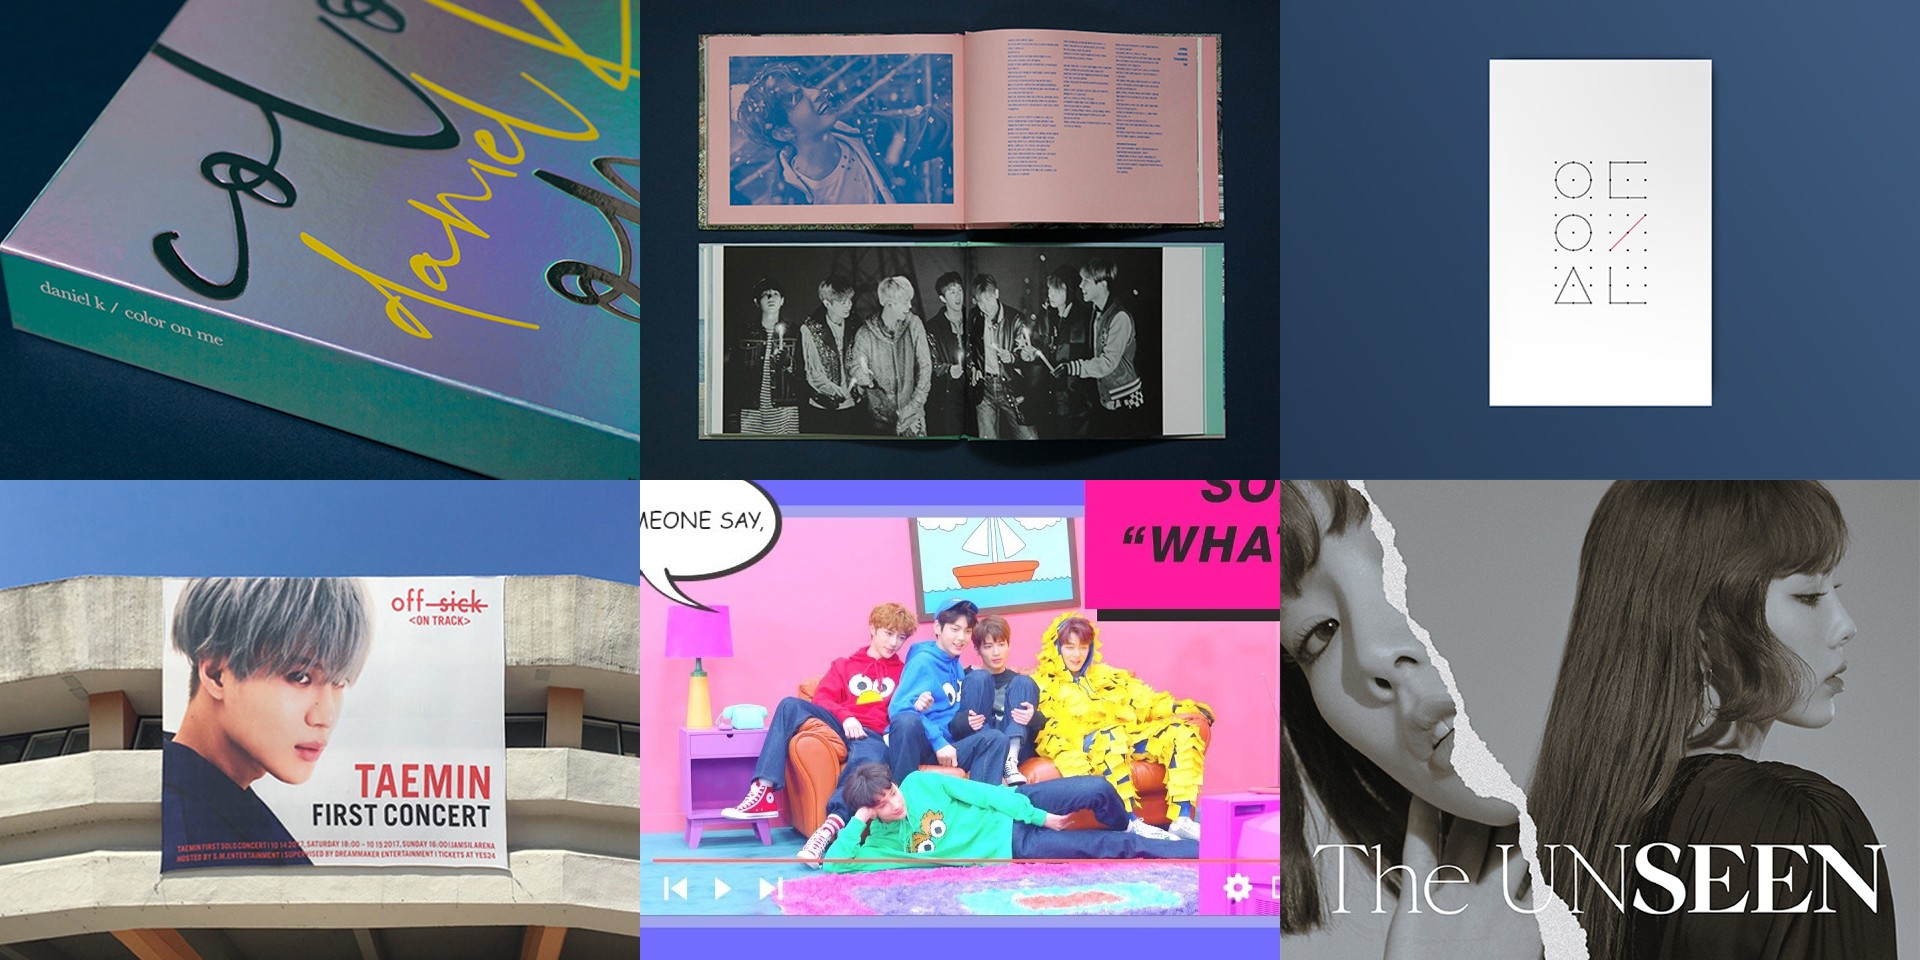 Jiyoon Lee of Studio XXX shares the processes behind 6 K-Pop albums and posters – BTS, Kang Daniel, LOONA, Taemin, TXT, and Taeyeon